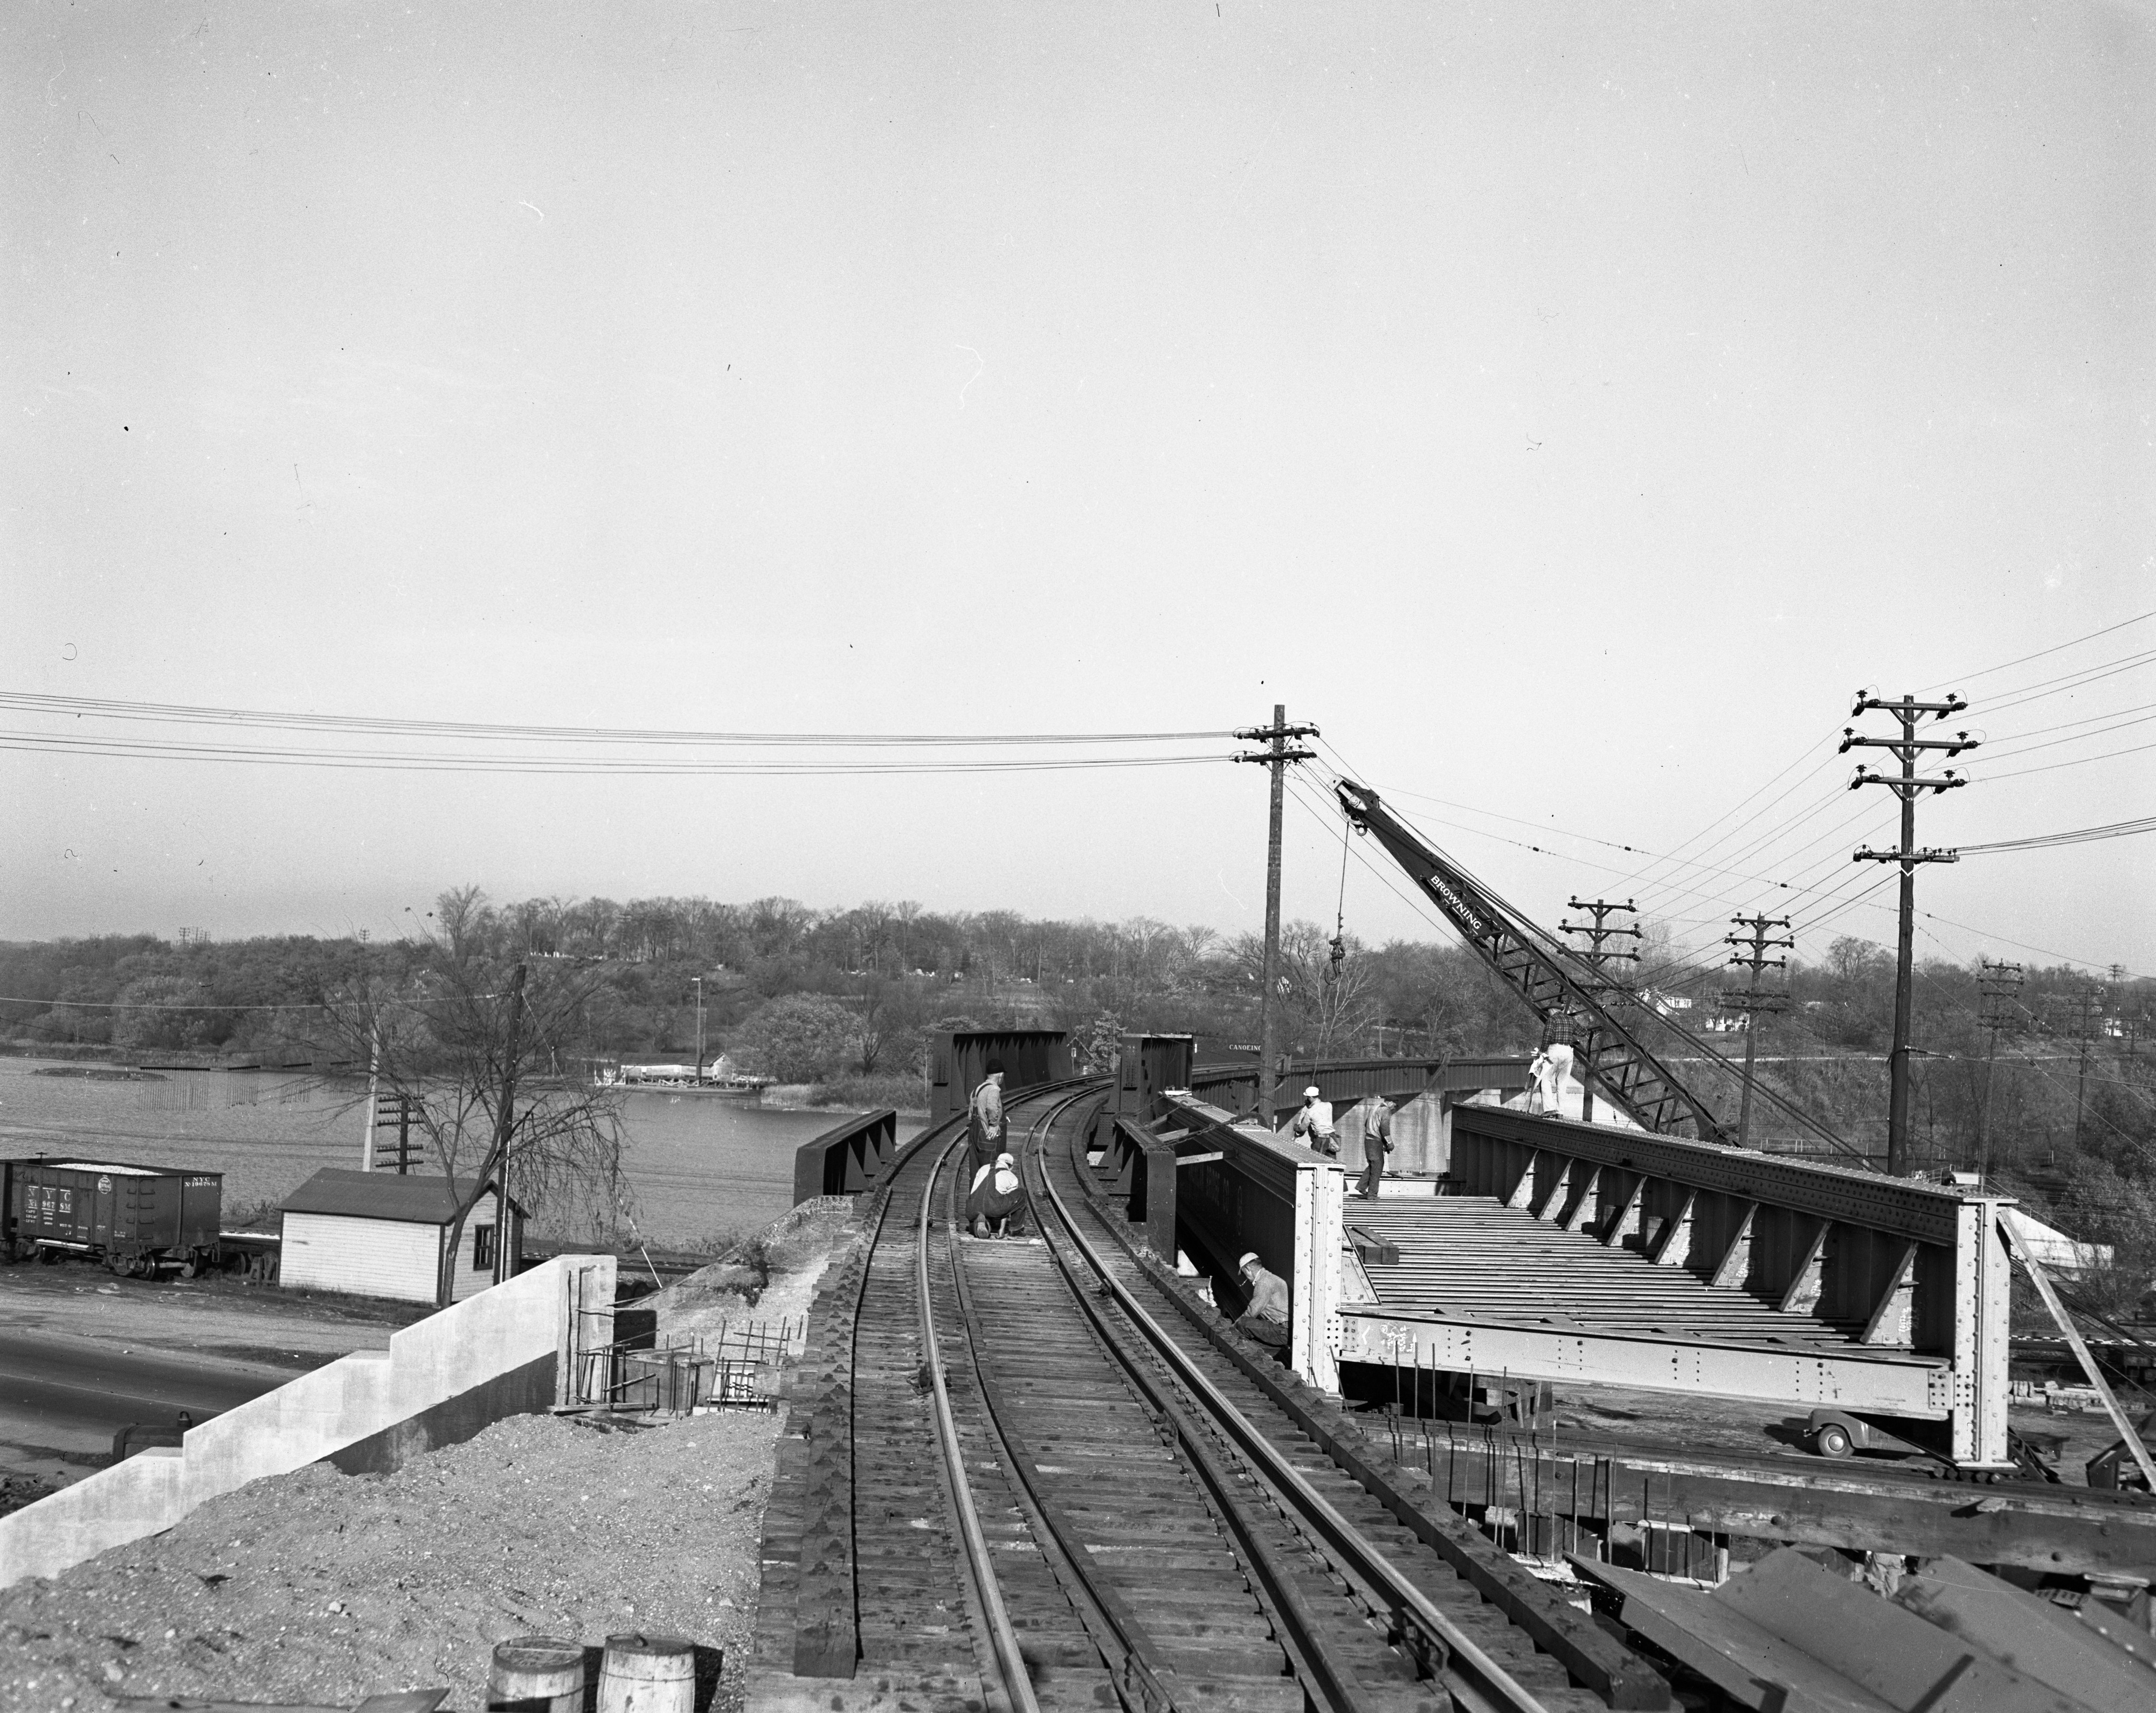 New bridge section of Ann Arbor Railroad on North Main Street, November 1950 image